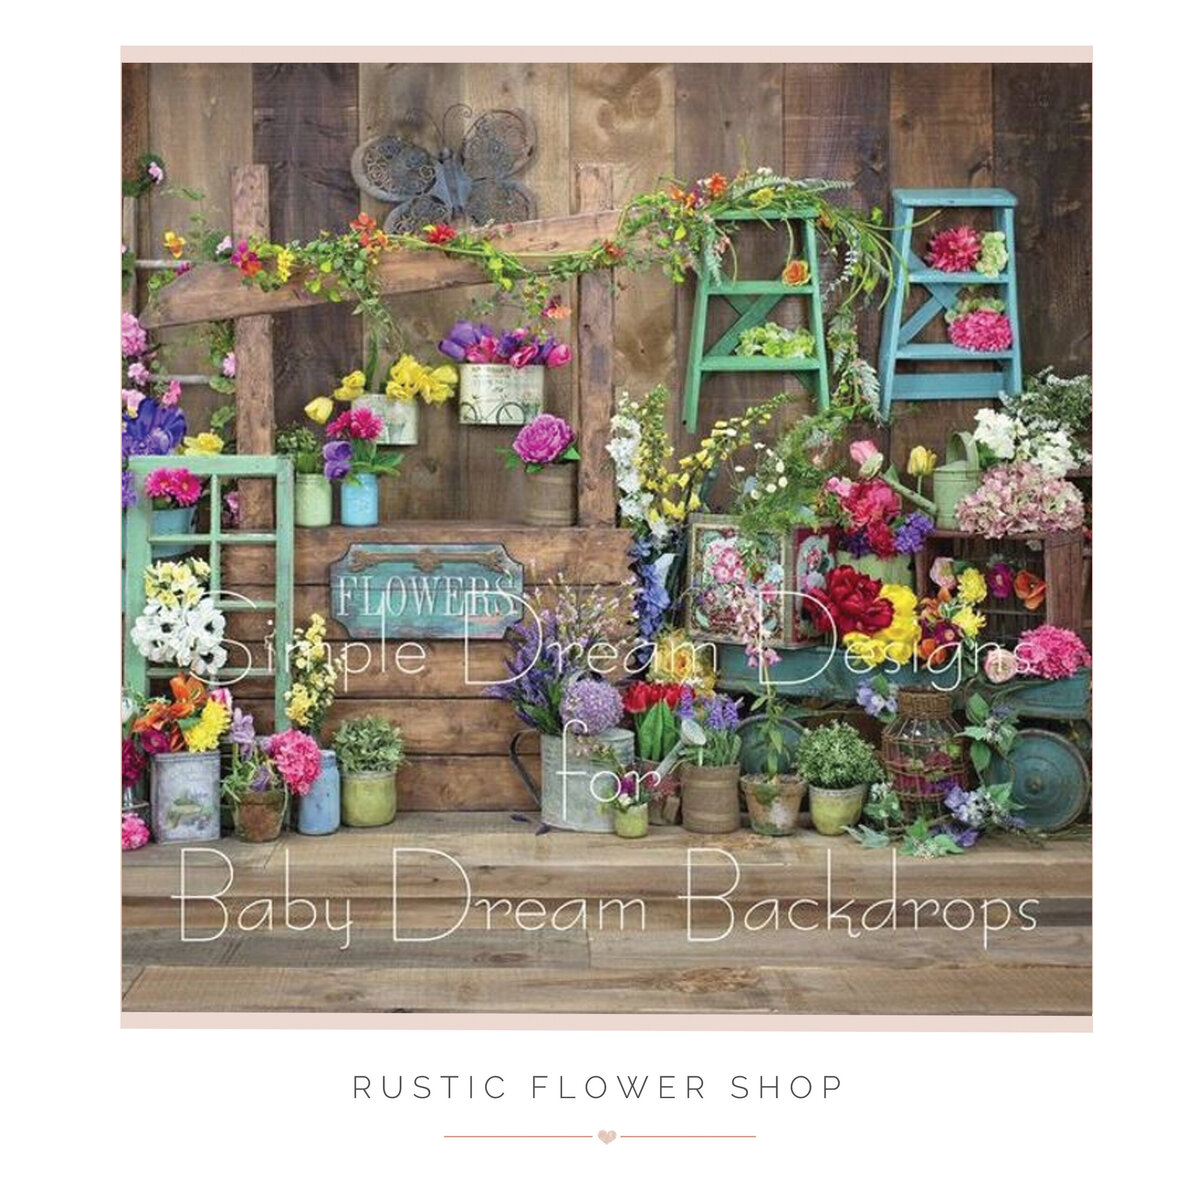 Rustic Flower Shop